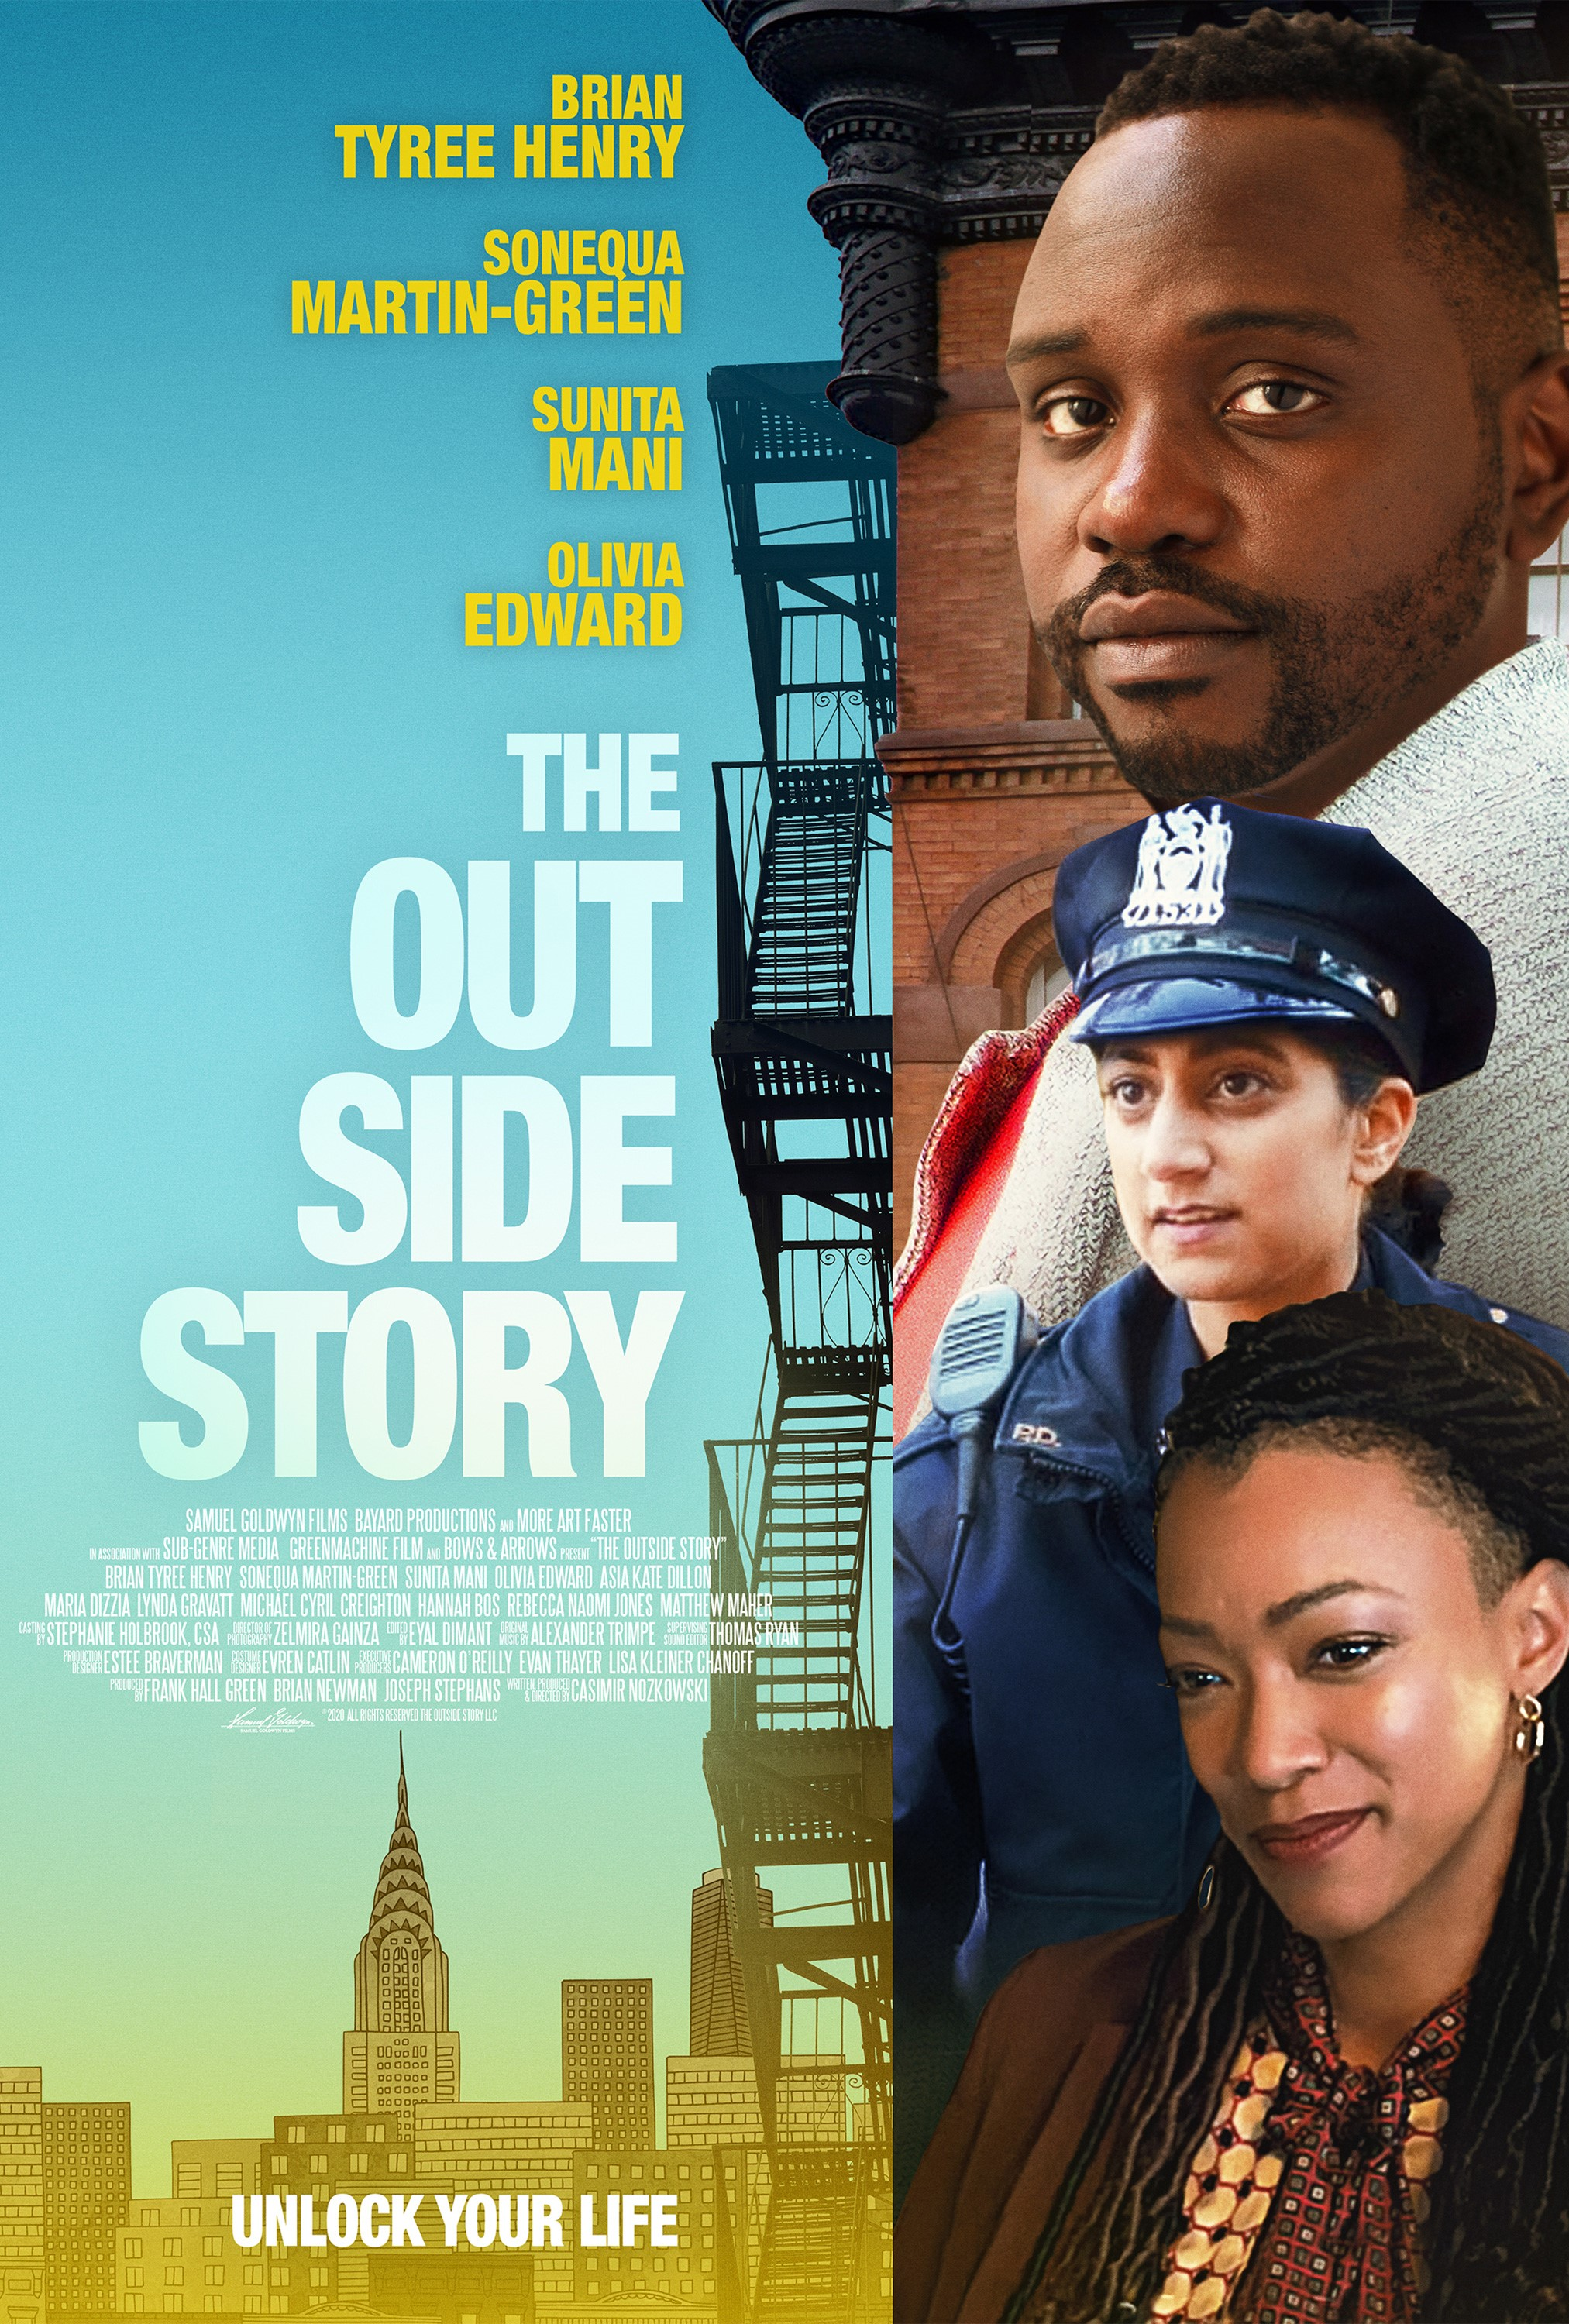 Download Filme The Outside Story Torrent 2021 Qualidade Hd